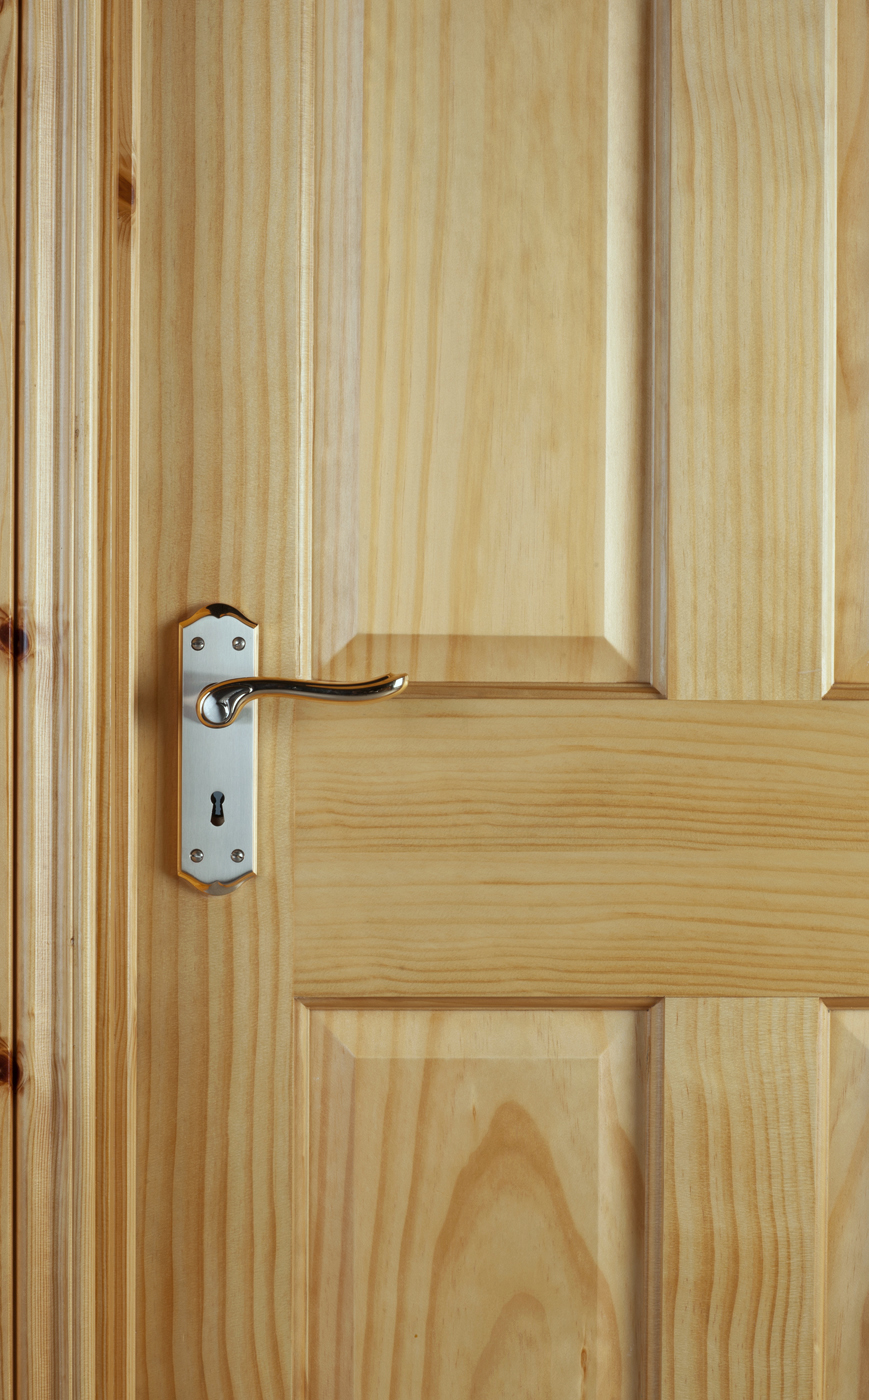 4 Panel Radiata Pine Door 40mm Internal Doors Pine Doors